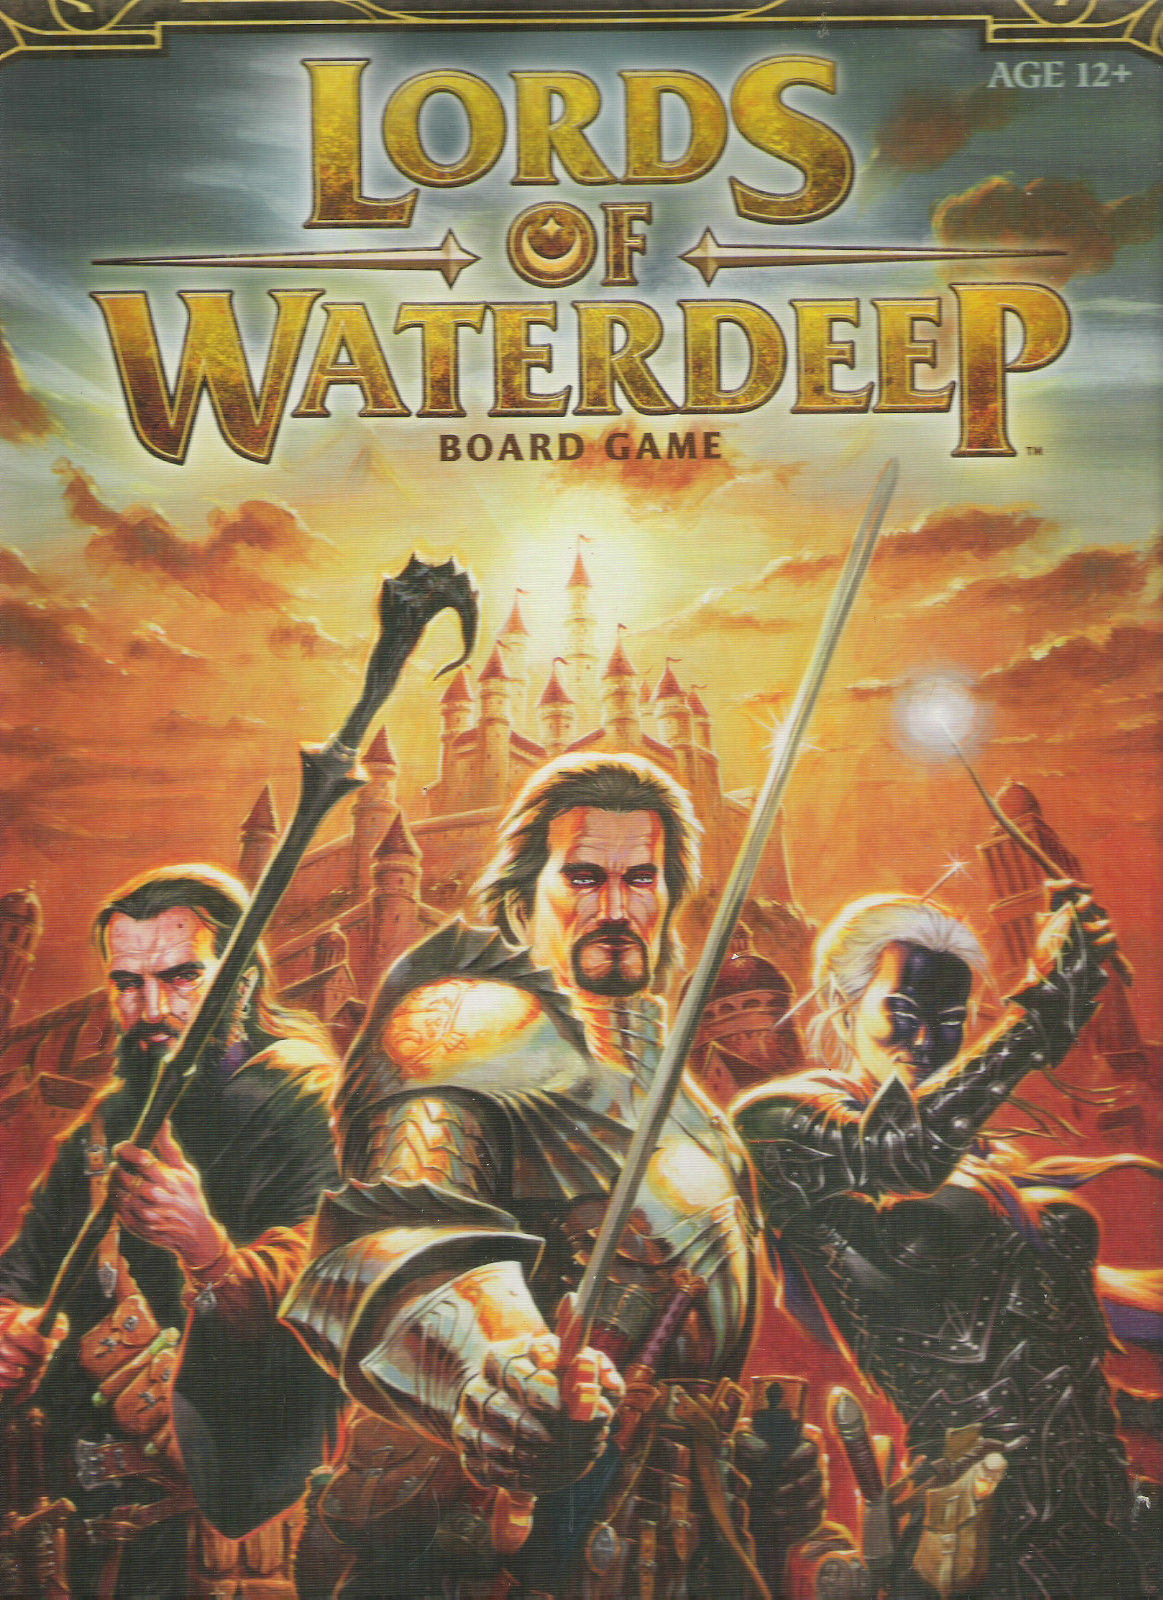 LORDS OF WATERDEEP NEW BOARDGAME REALMS DUNGEONS DRAGONS WOTC BOXED